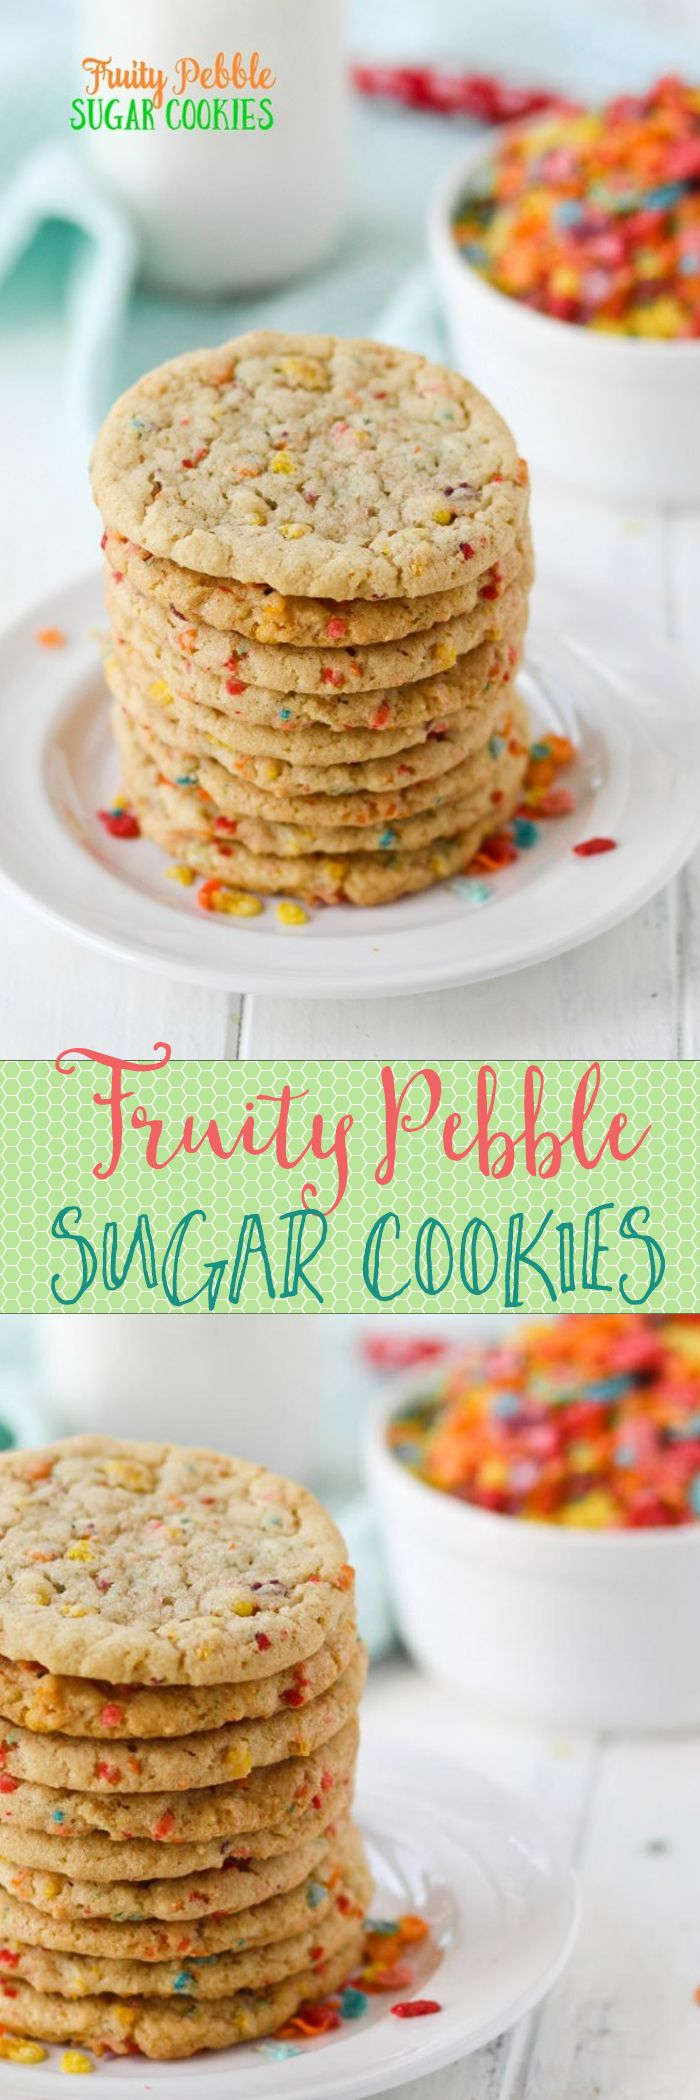 Chewy, fruity cookies with slightly crisp edges. These are some of the best cookies ever and SO fun! The kids love them.